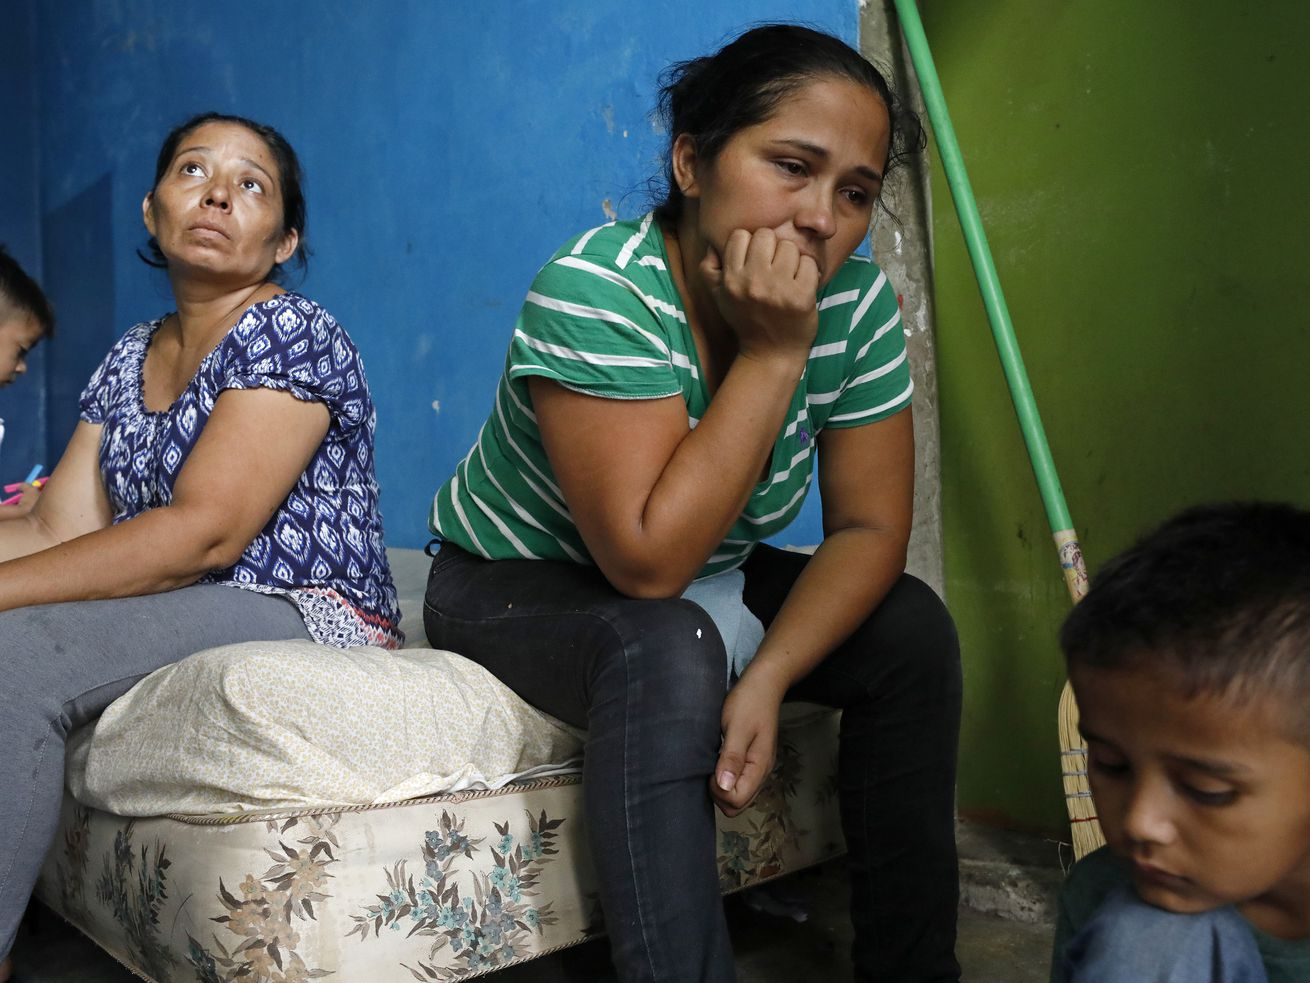 A pastor was kidnapped. White tents go up. In Nuevo Laredo, the border crisis is reaching a tipping point